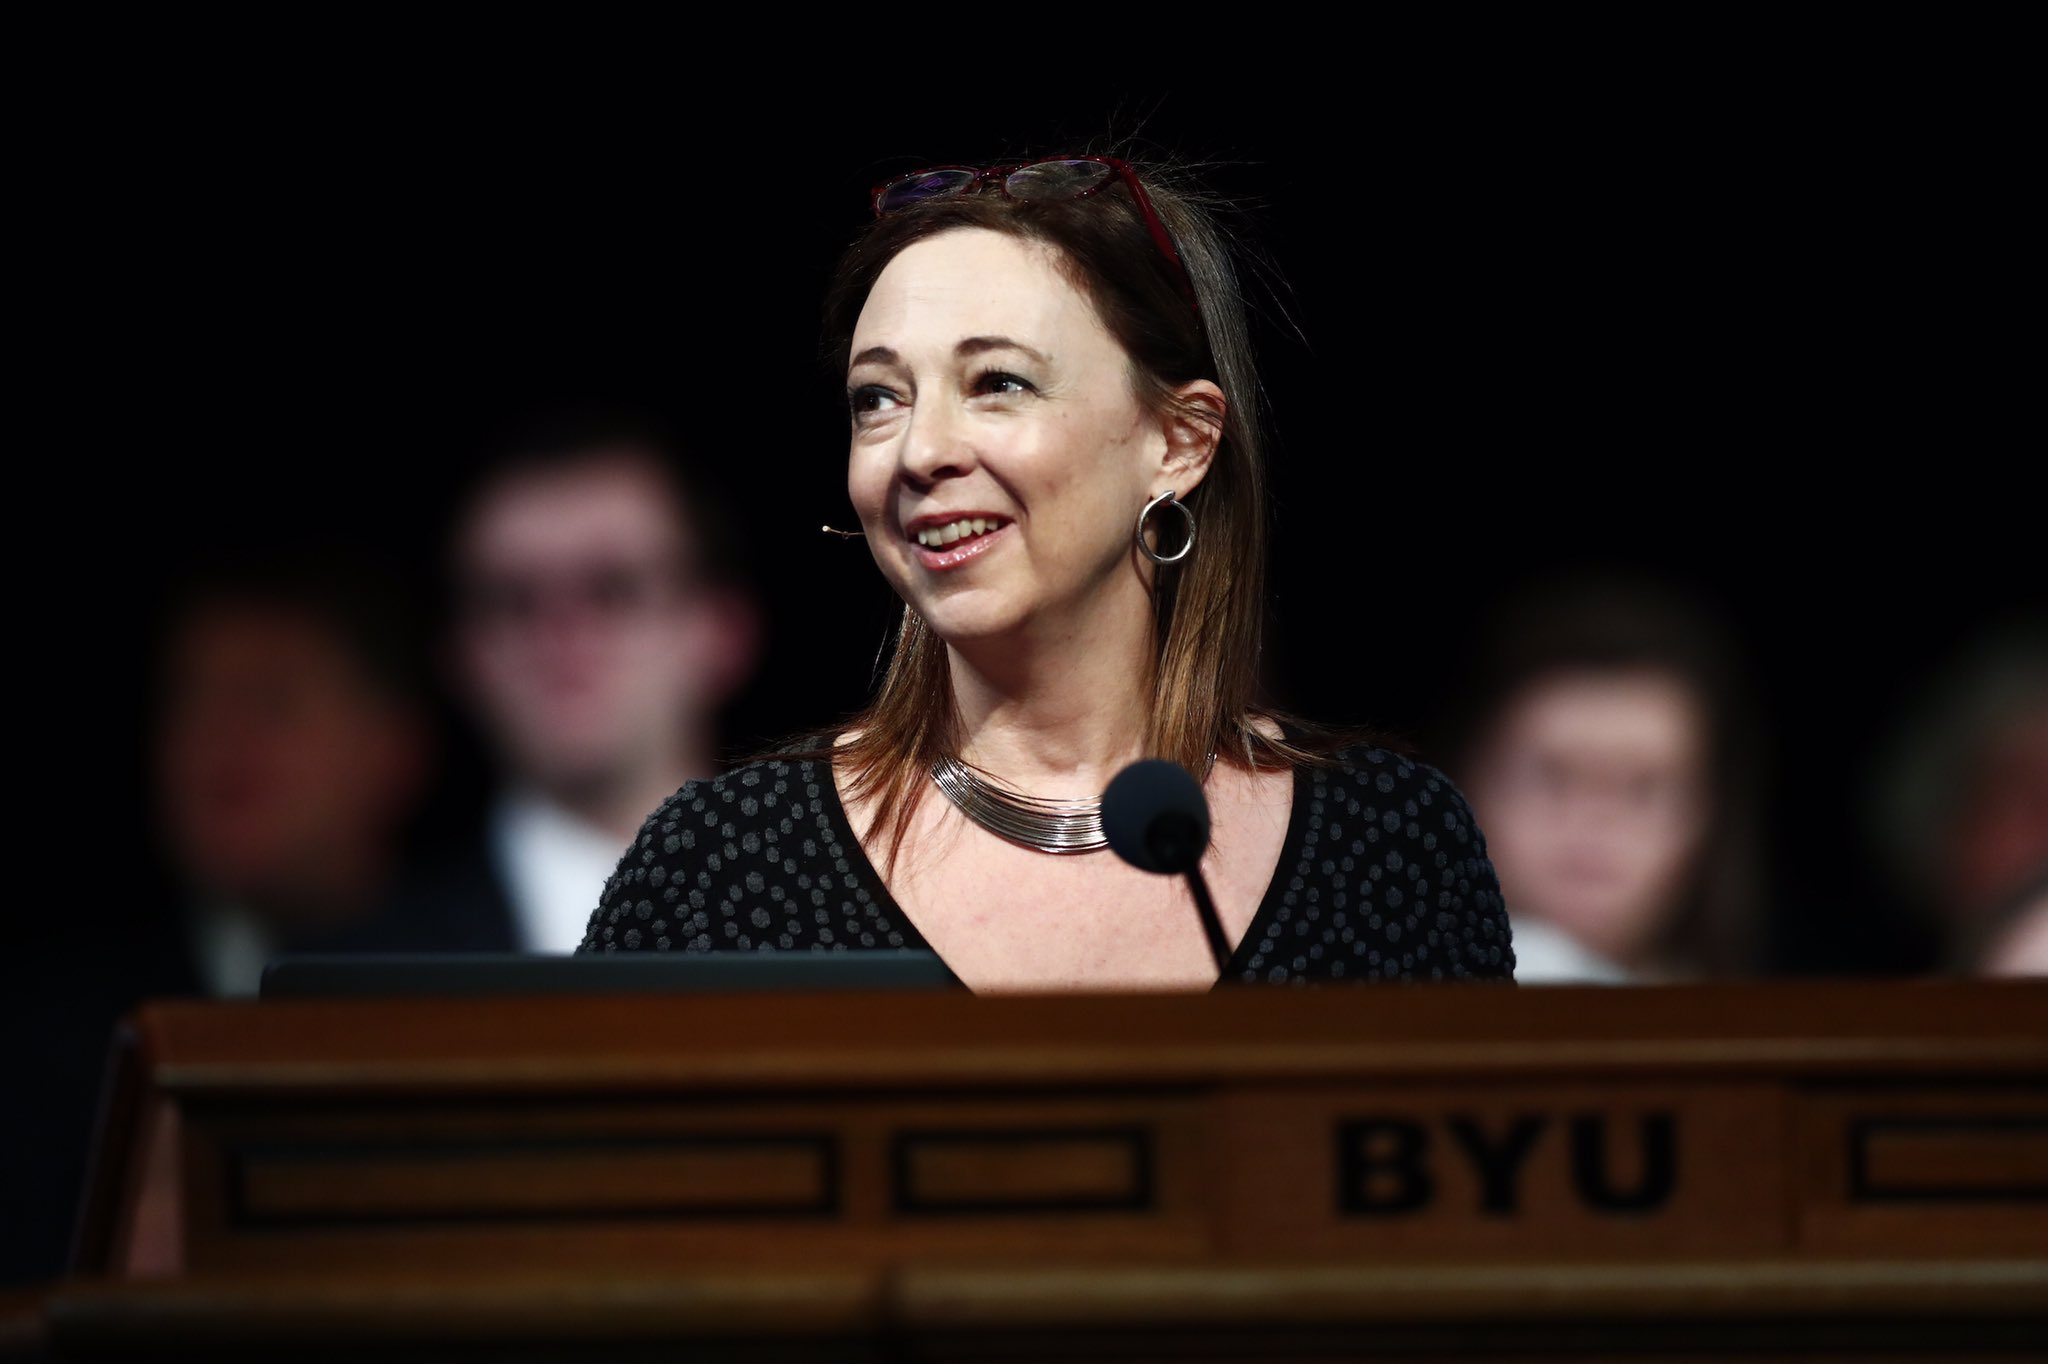 If you want to create something unique, you need to sequester yourself for at least a little while. - @susancain #byudevo https://t.co/S9ZVSByL7s